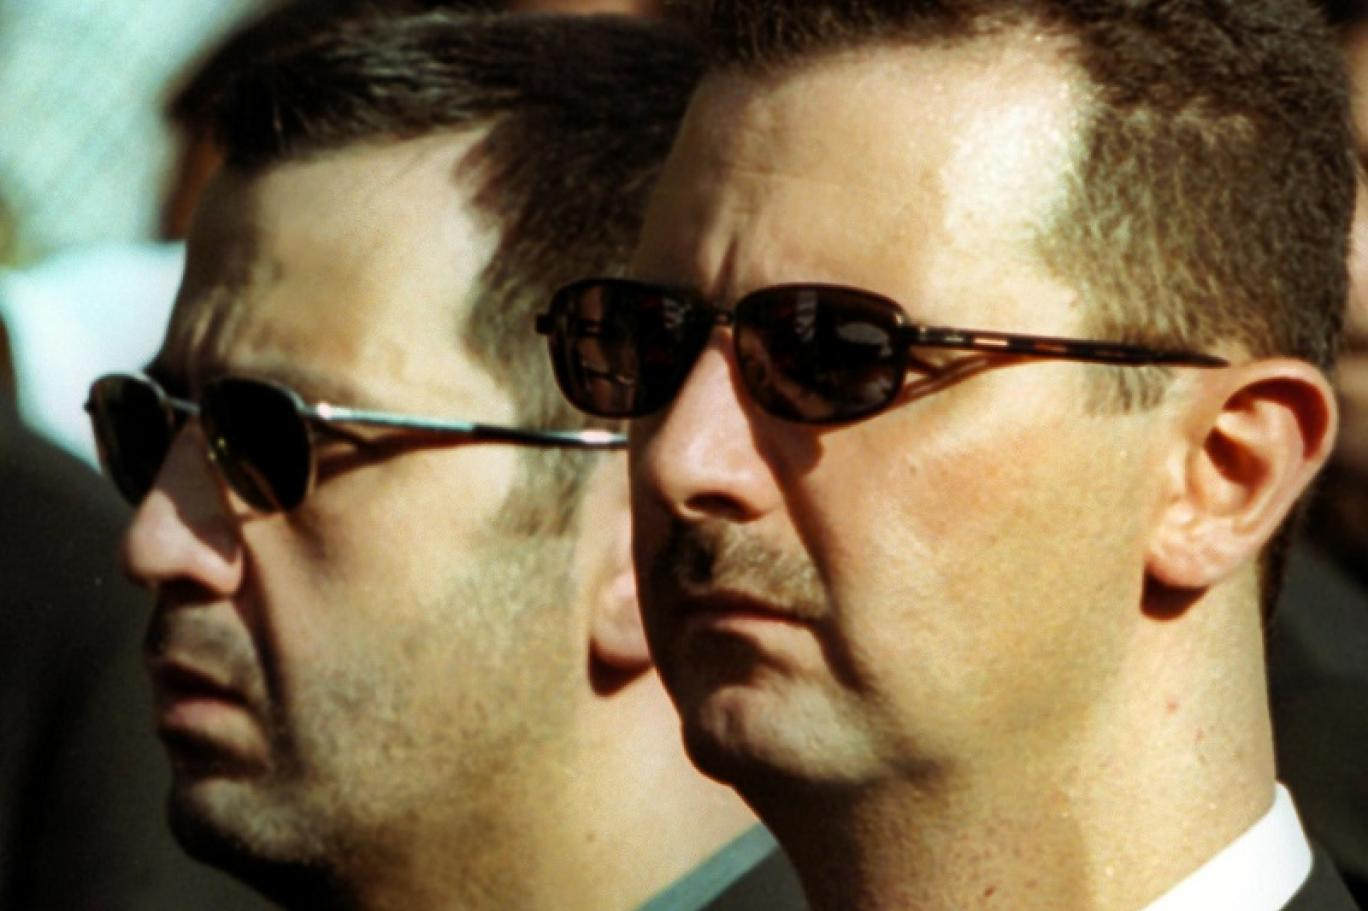 Syria's President Bashar al-Assad and his younger brother Maher al-Assad. (Photo: AFP/Getty Images)